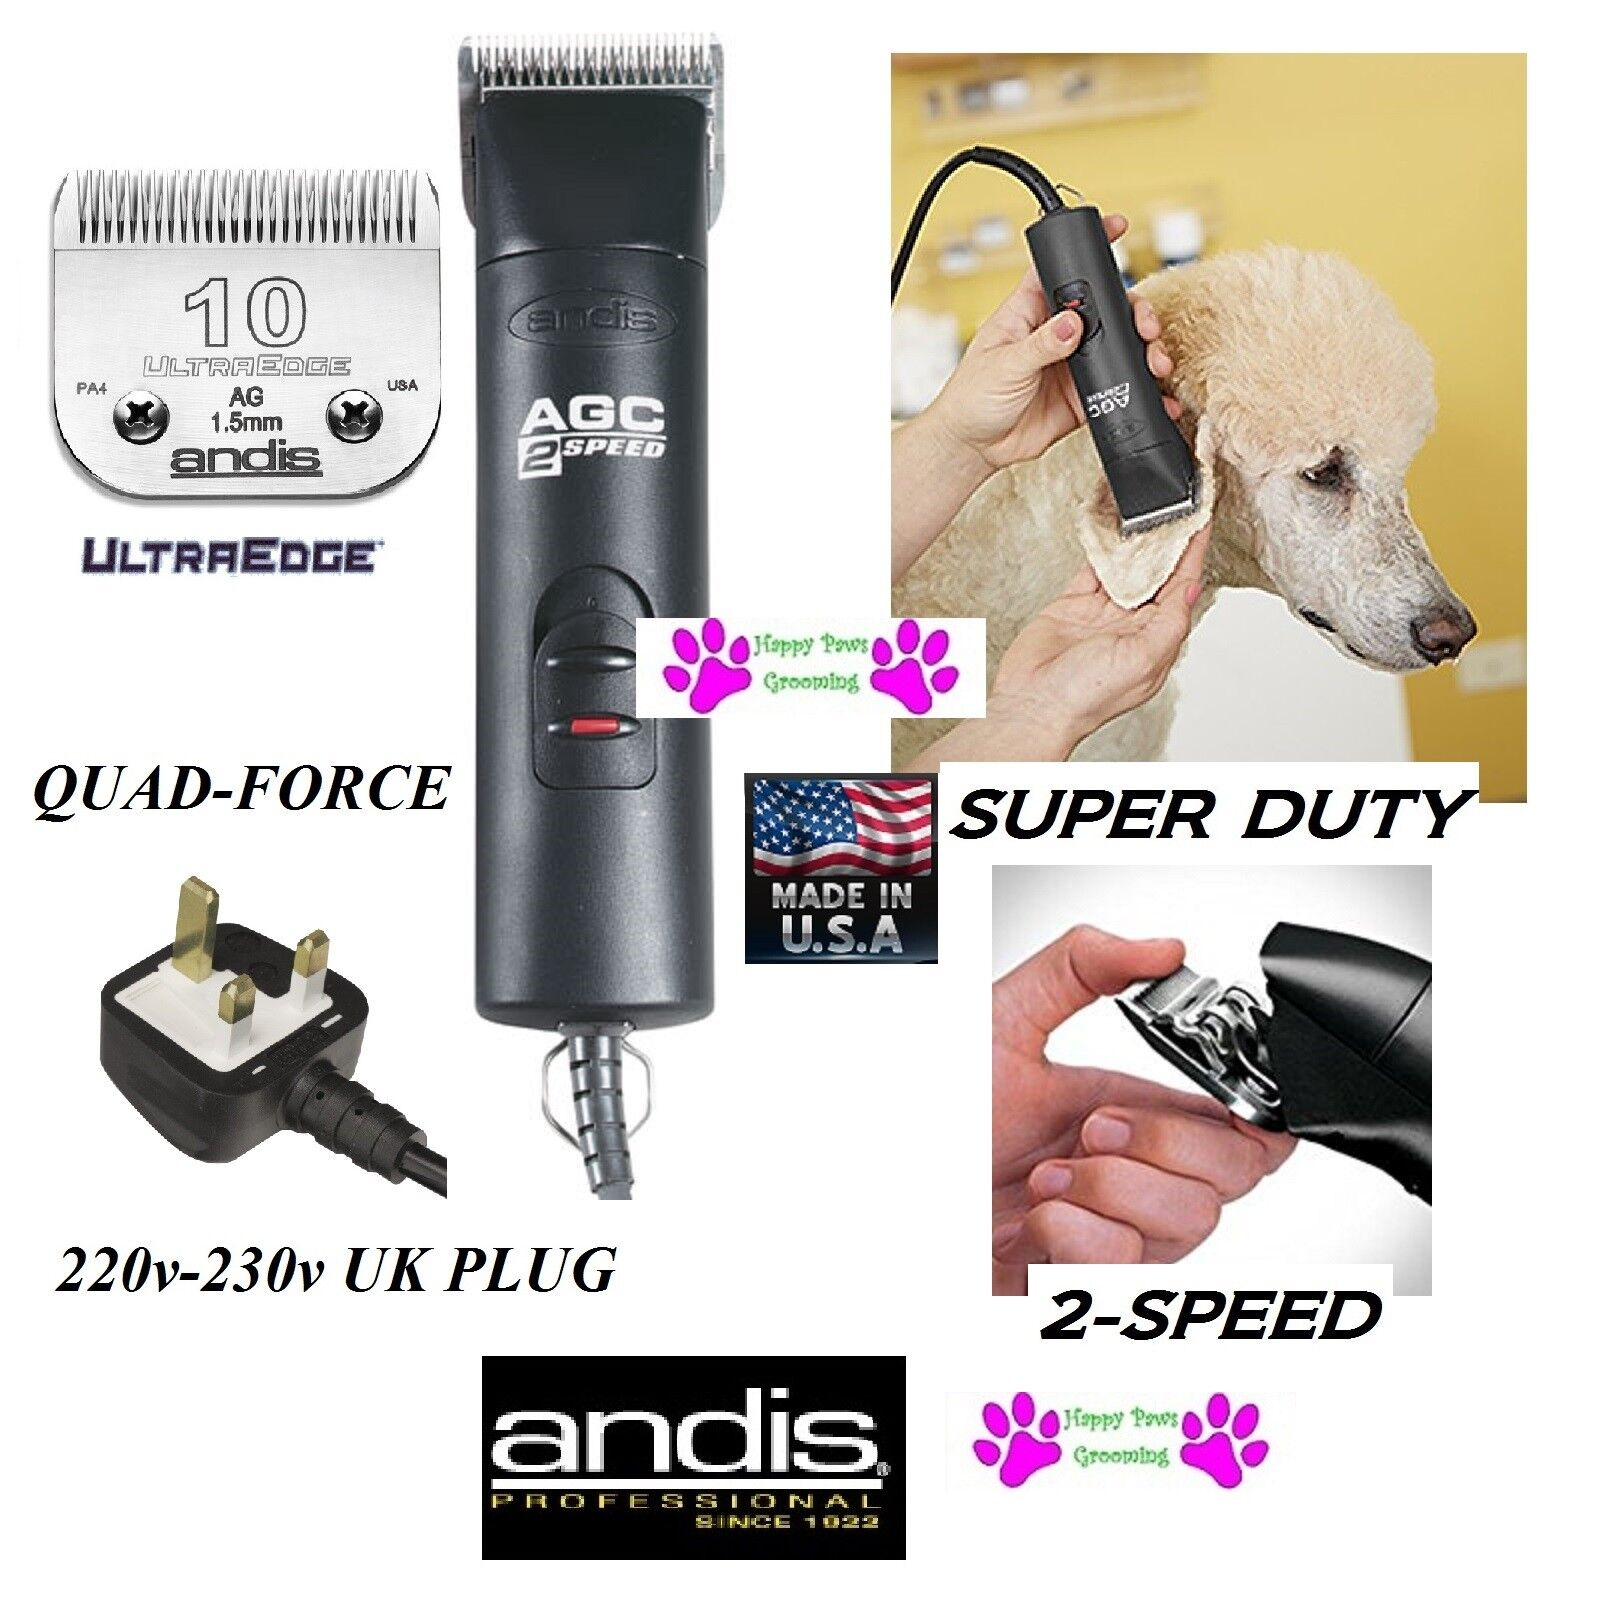 Andis 220-230 Volt UK Plug AGC SUPER-DUTY 2-Speed CLIPPER SET&UltraEdge 10 Blade